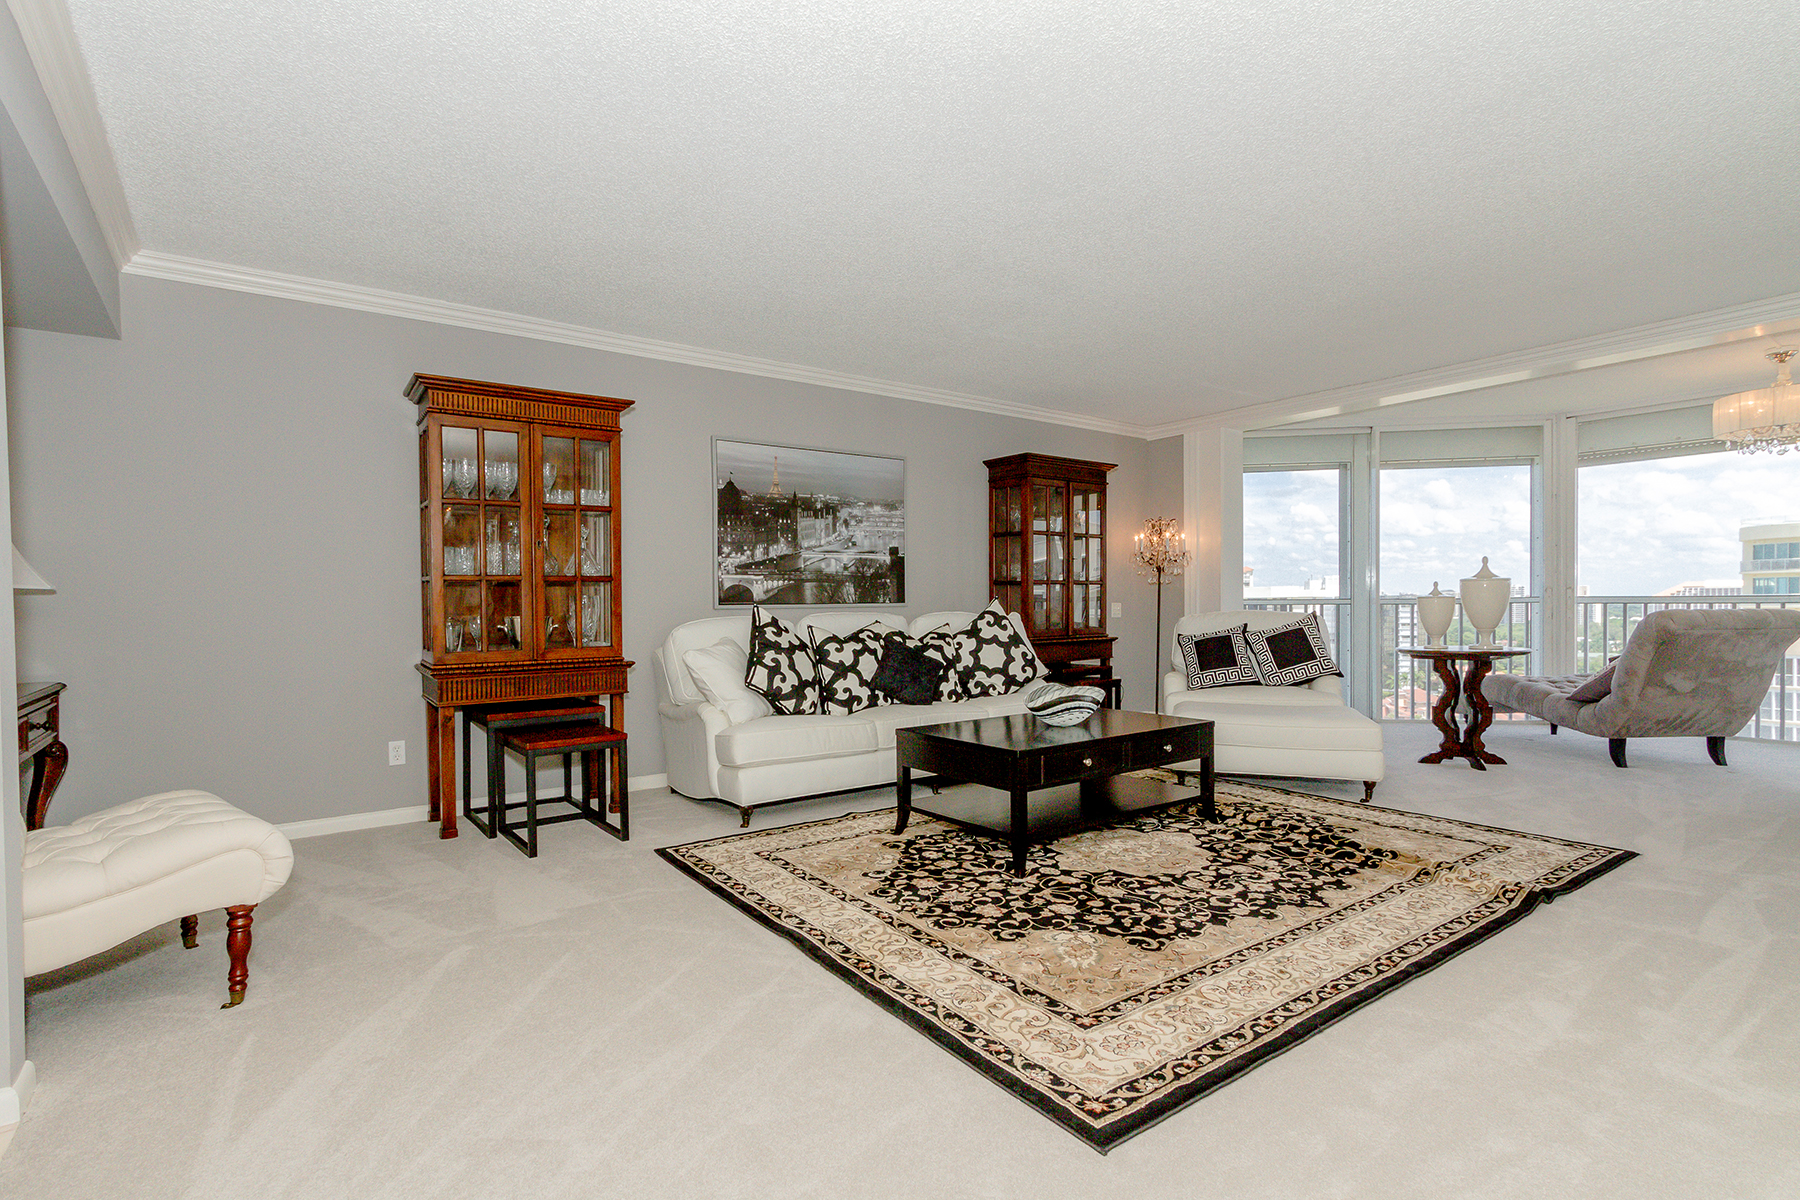 rentals property at 4401 Gulf Shore Blvd N, PH-4, Naples, FL 34103